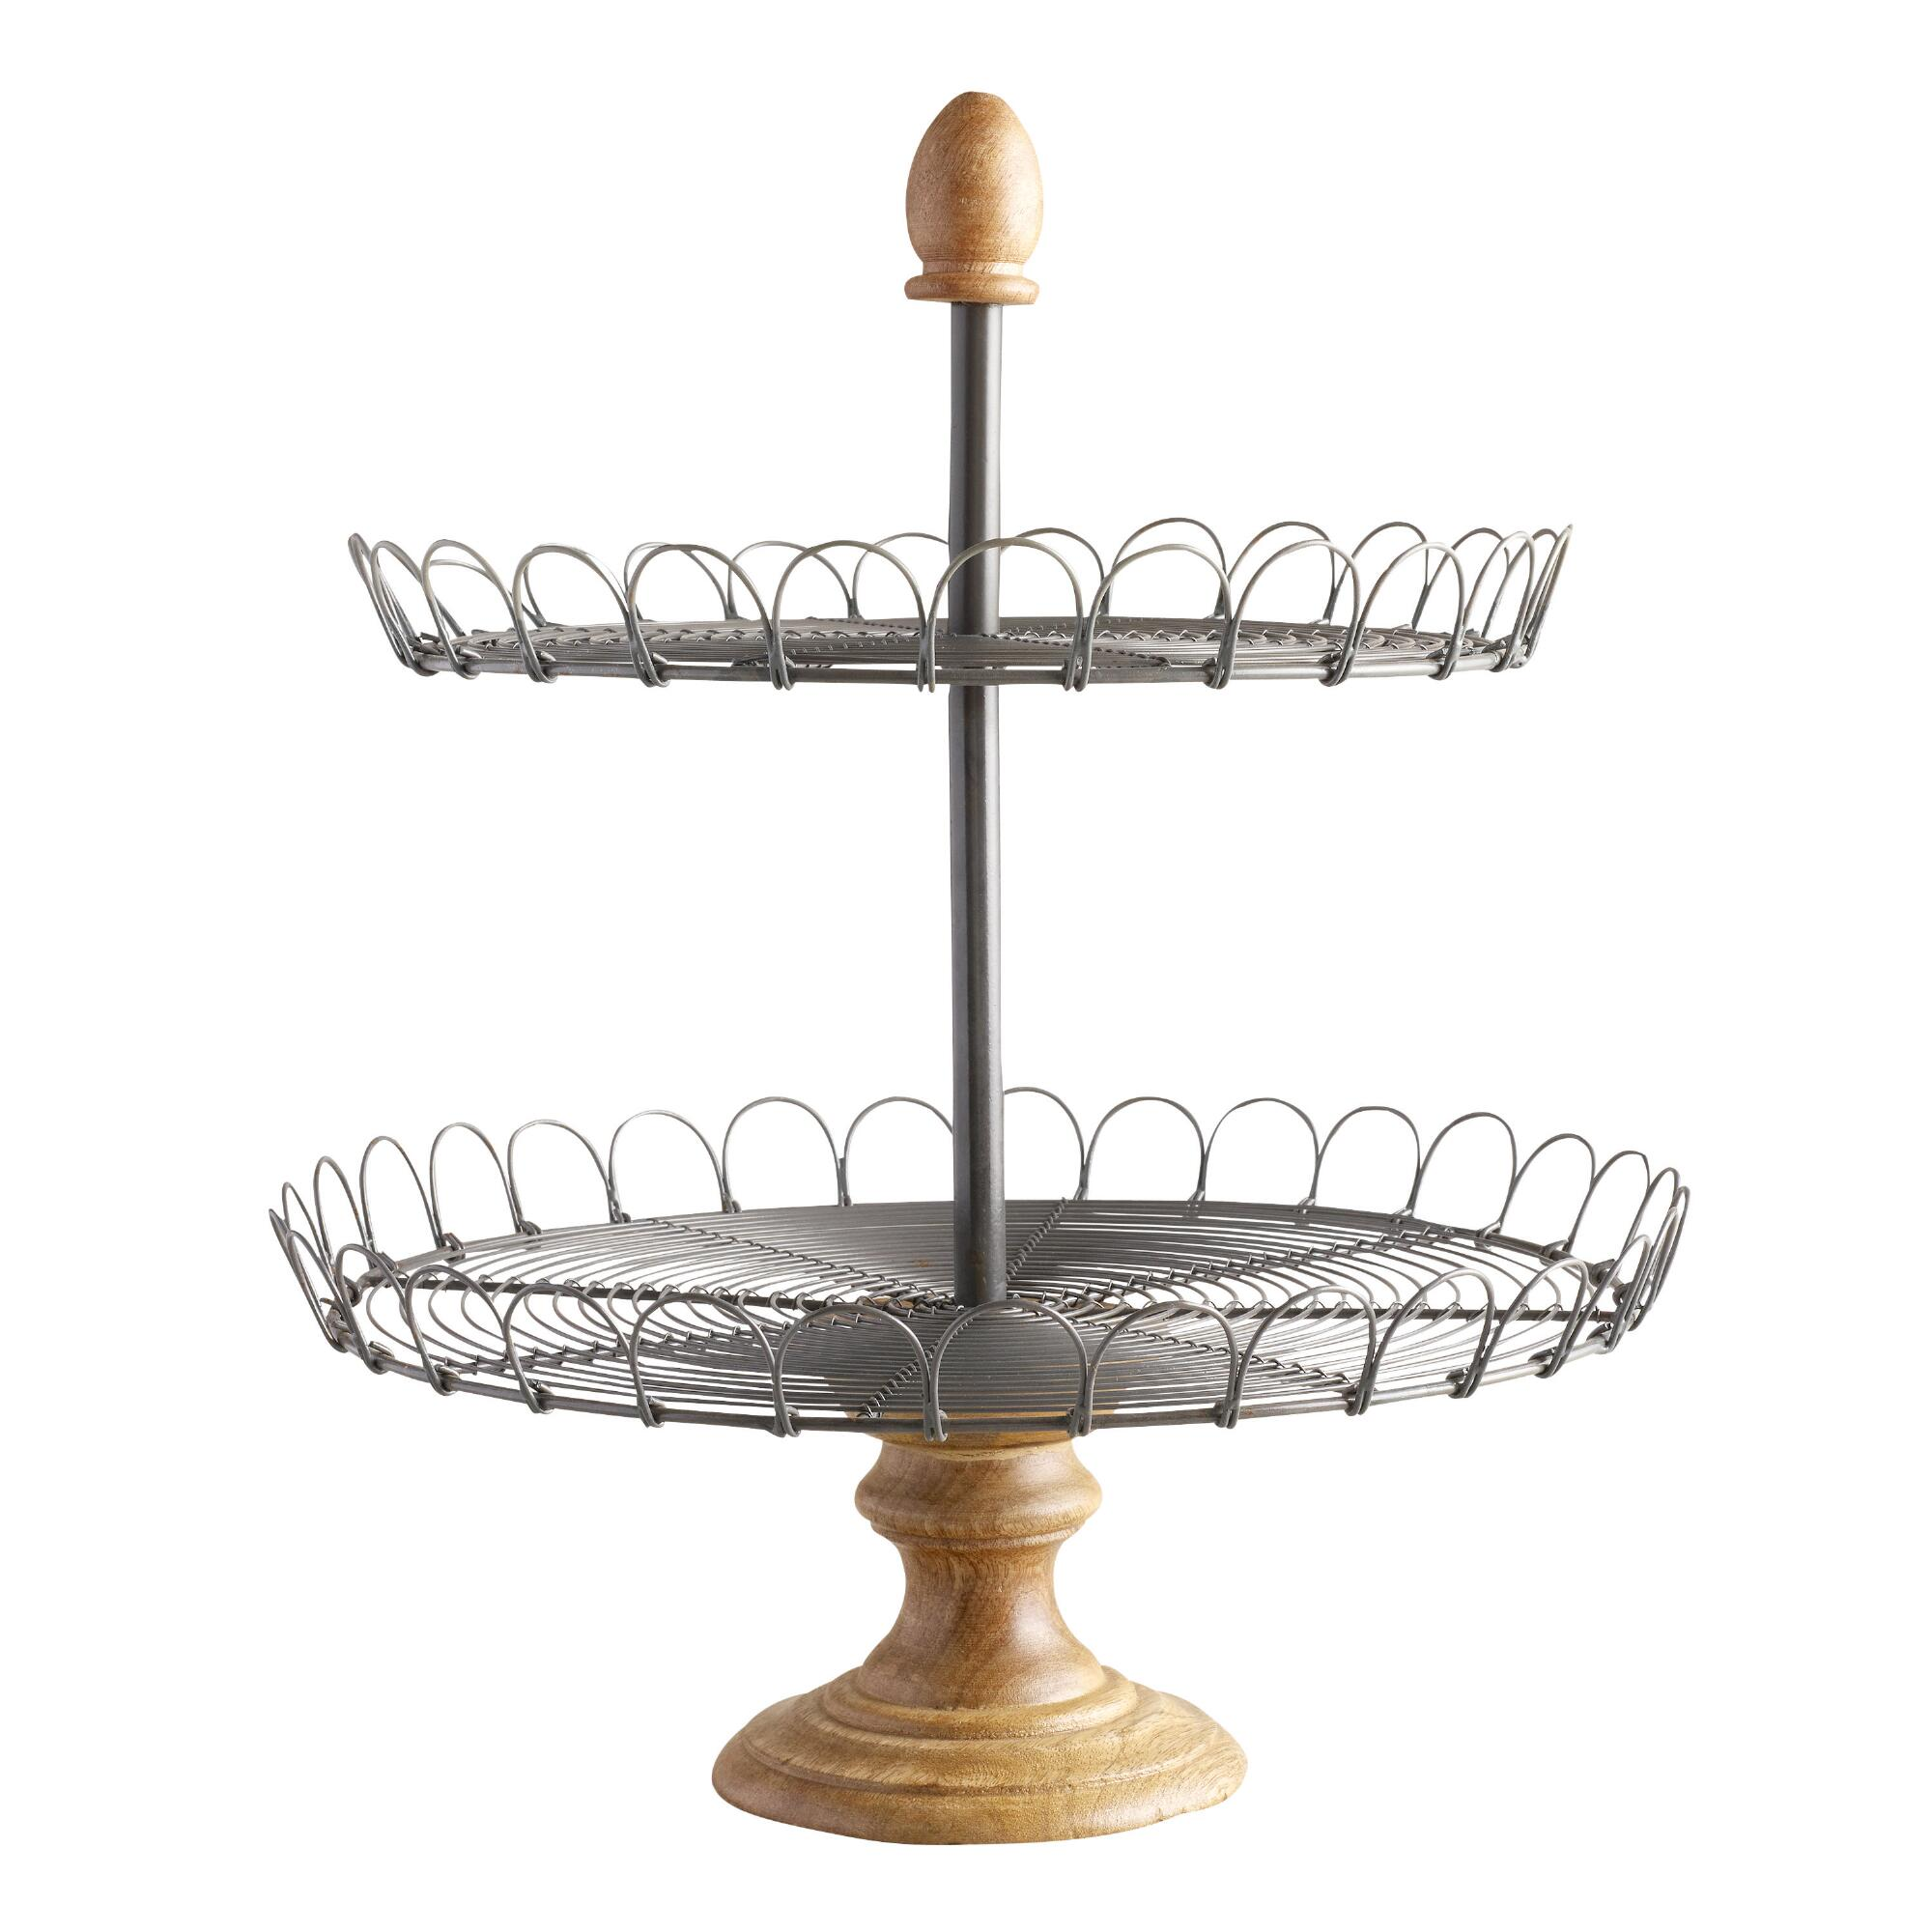 Edin Wood 2-Tiered Stand: Metallic/Natural - Metal by World Market